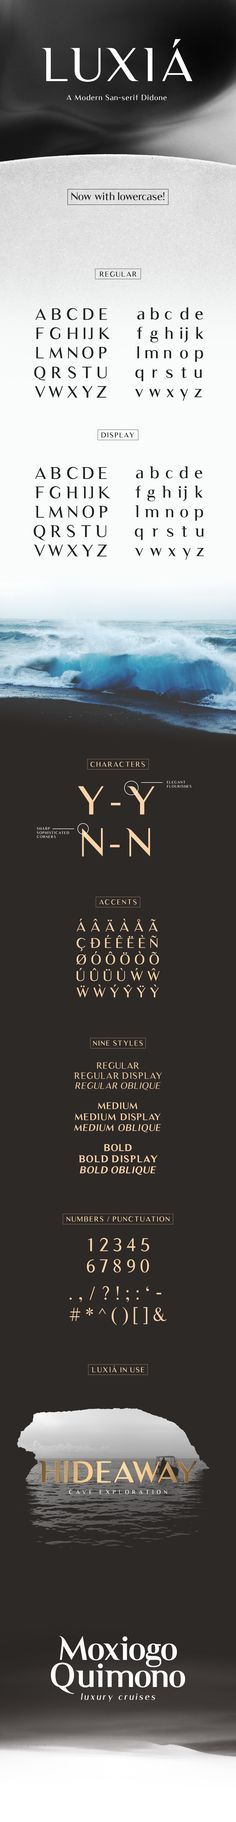 Luxia - Free Typeface on Behance